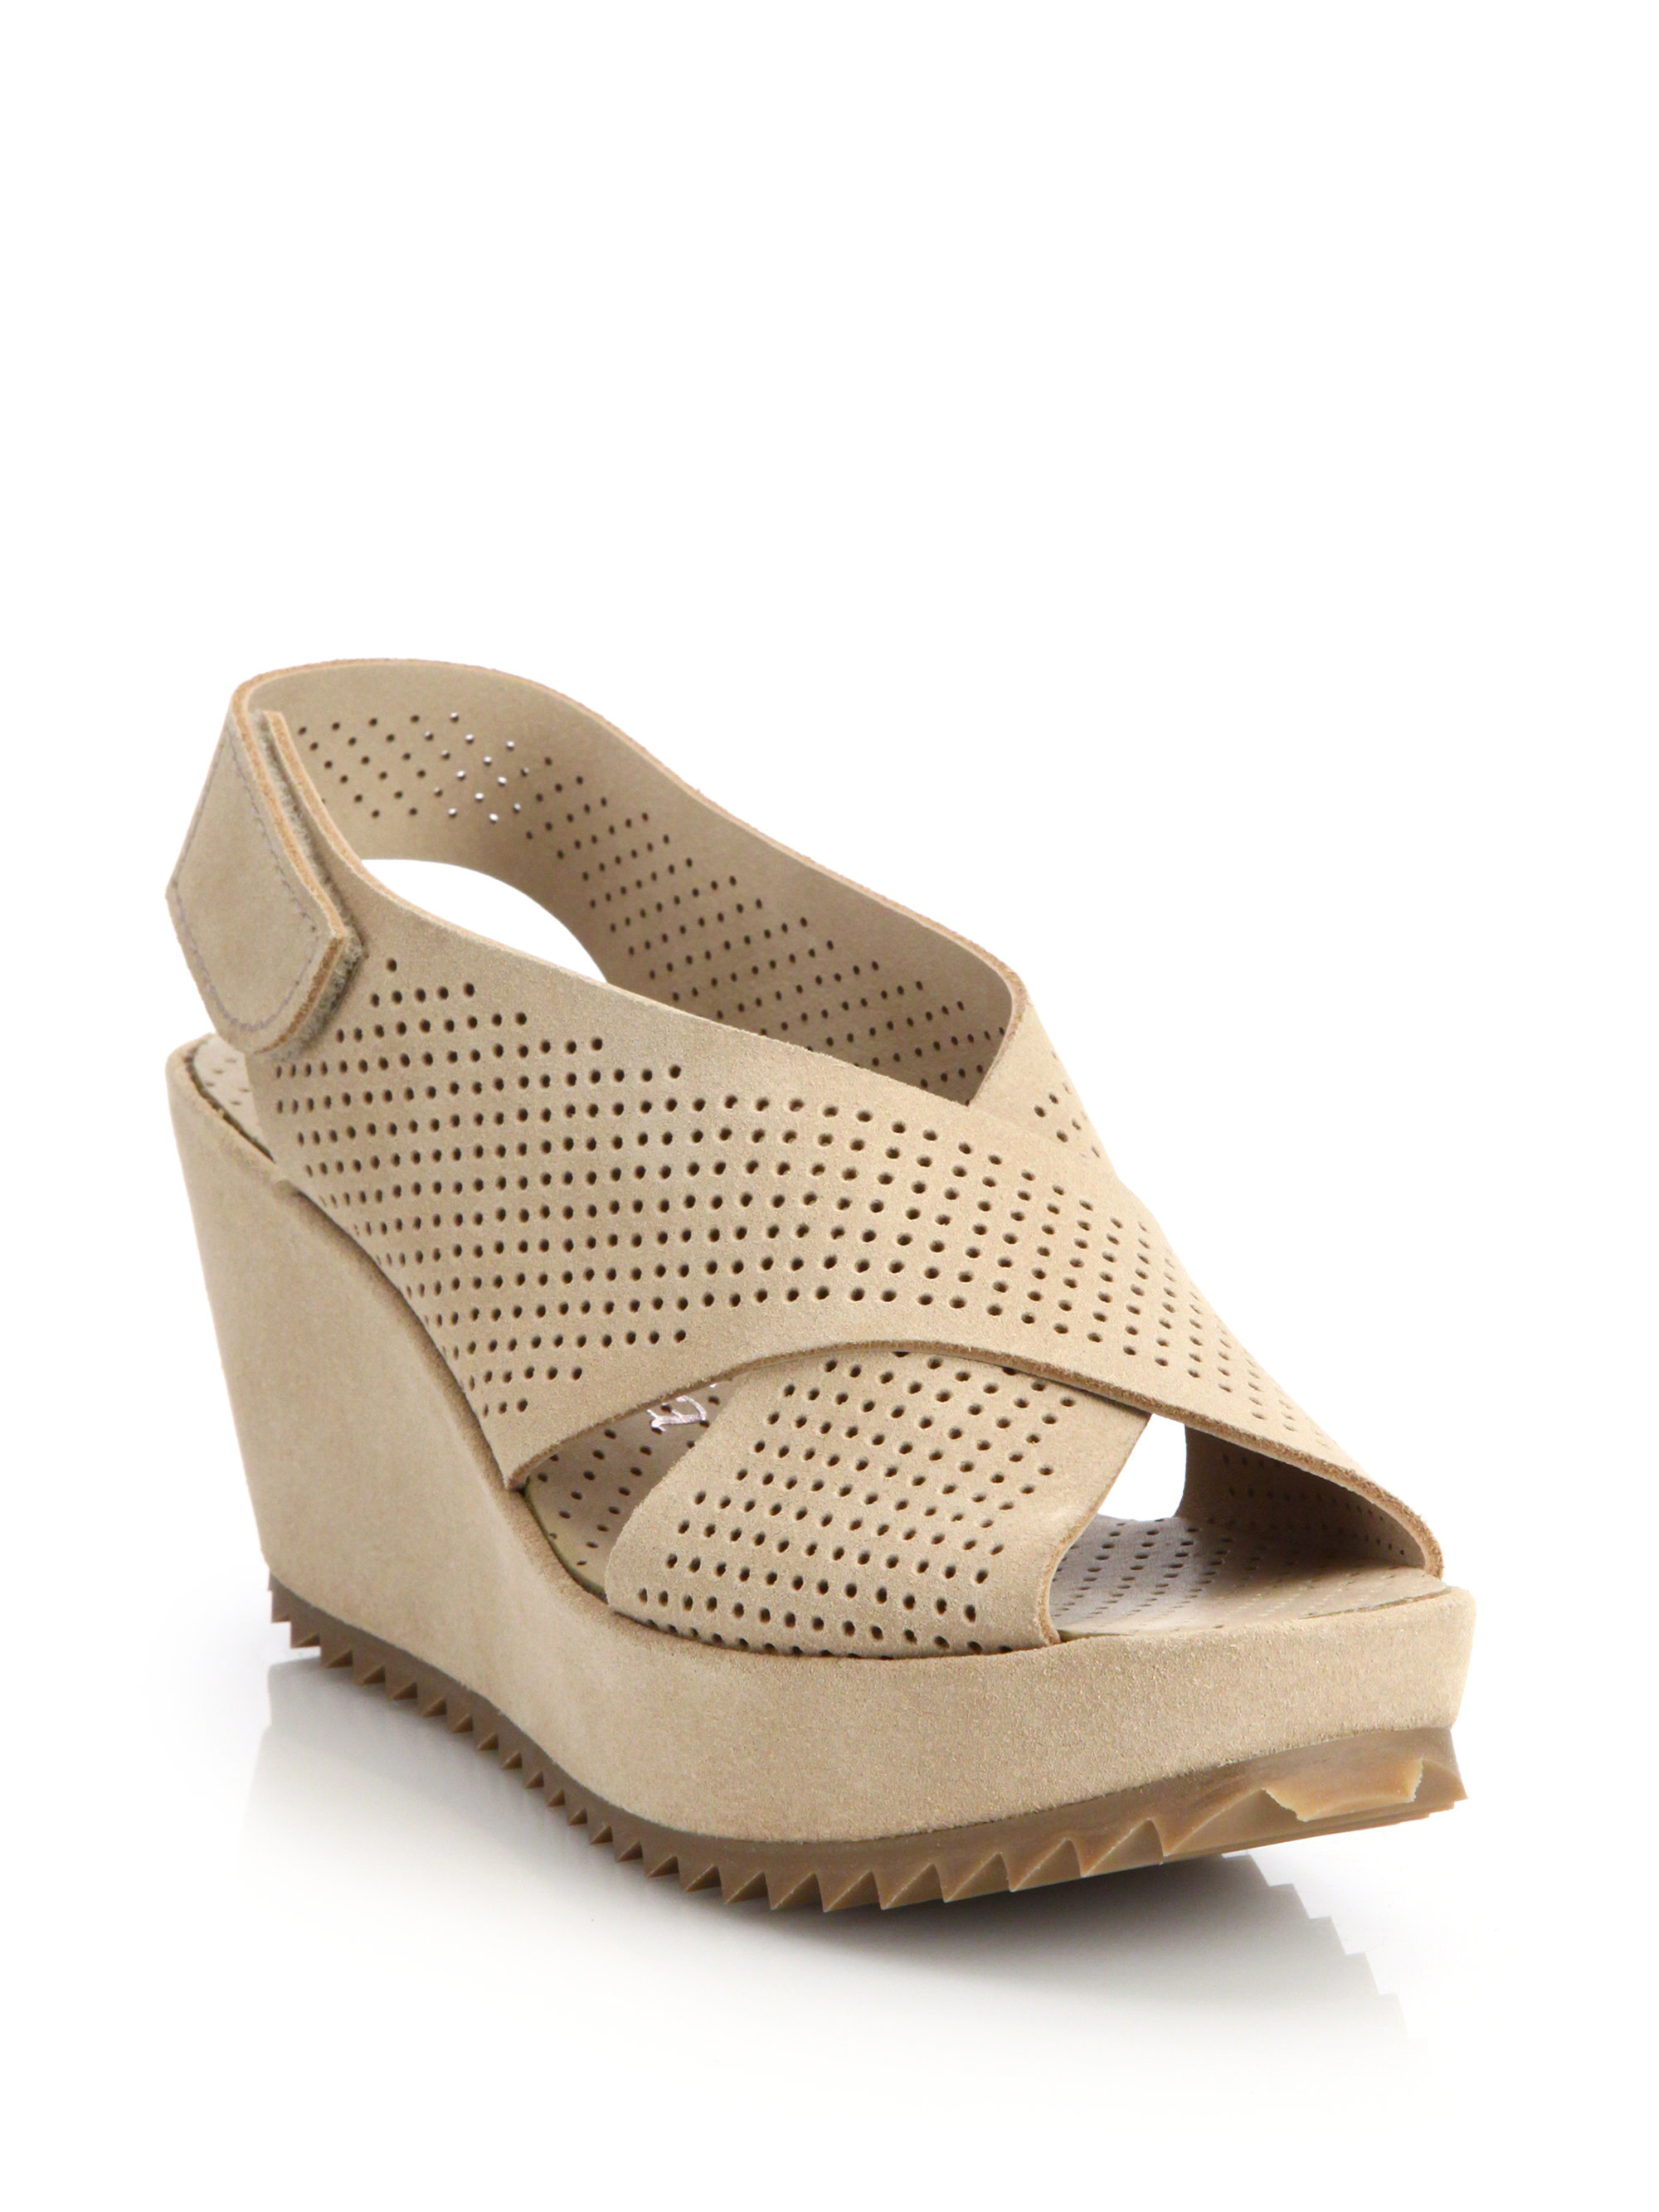 c12a3c49fab9 Lyst - Pedro Garcia Frigg Suede Crossover Wedge Sandals in Natural